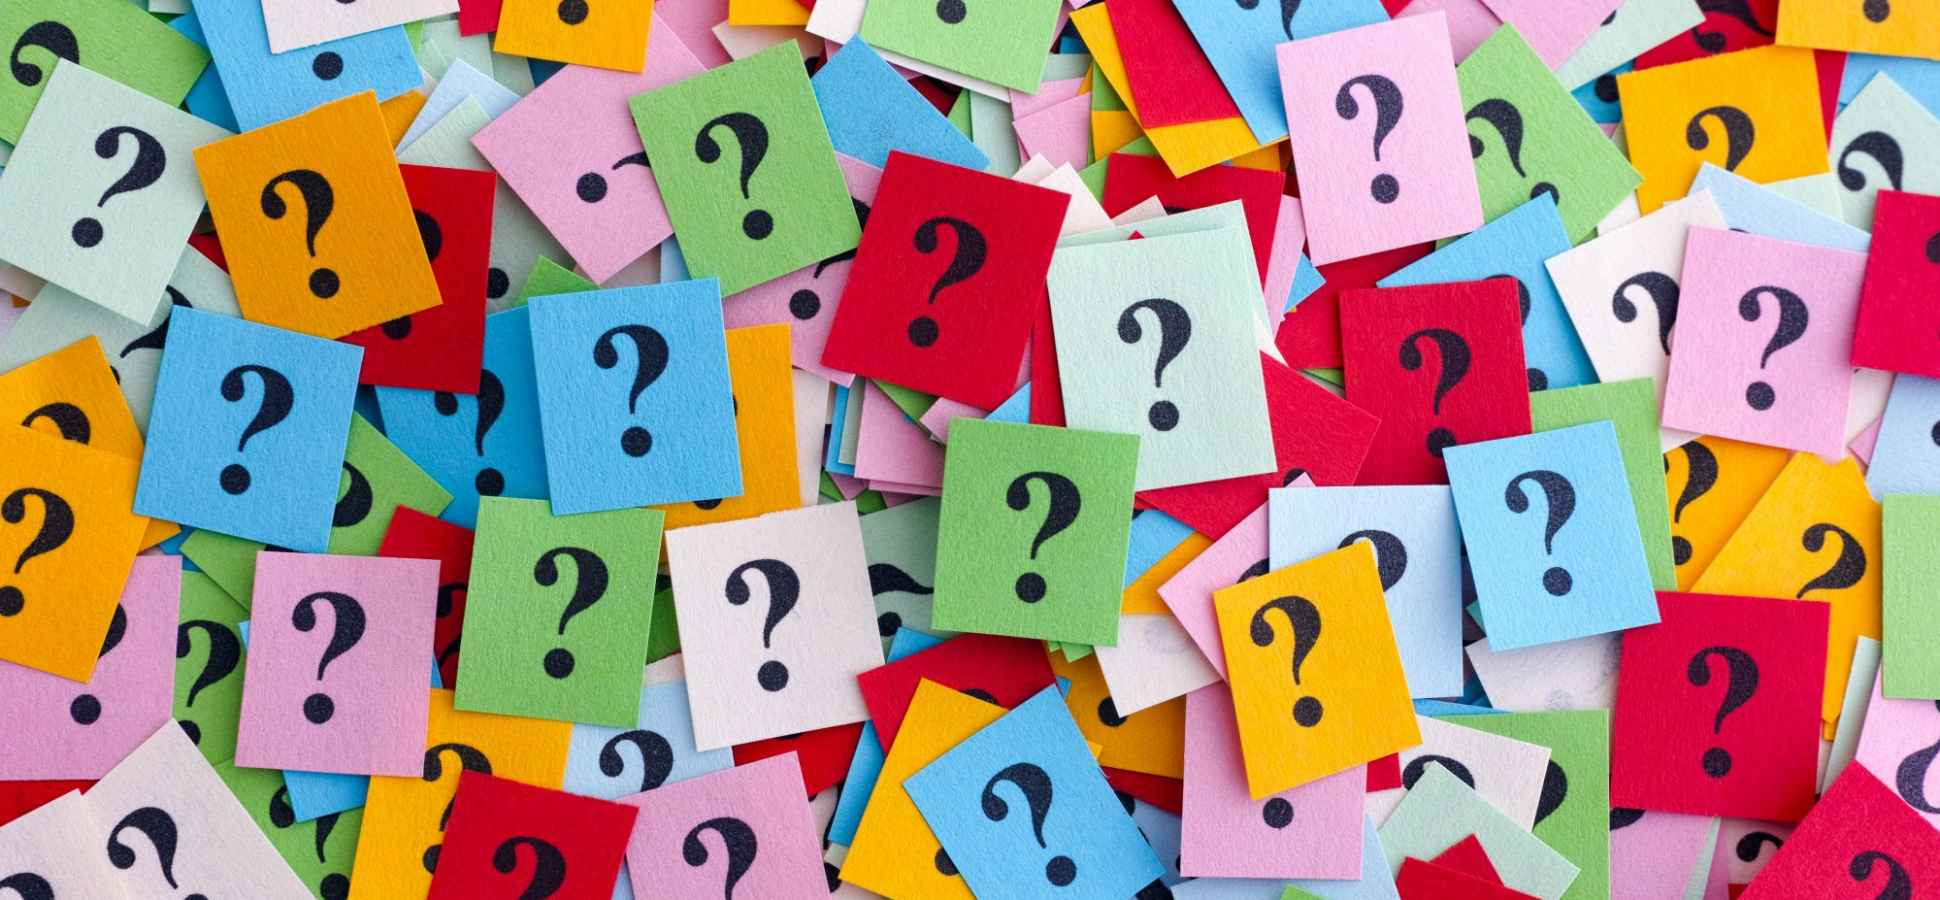 7 Critical Questions Every Start-Up Entrepreneur Must Answer